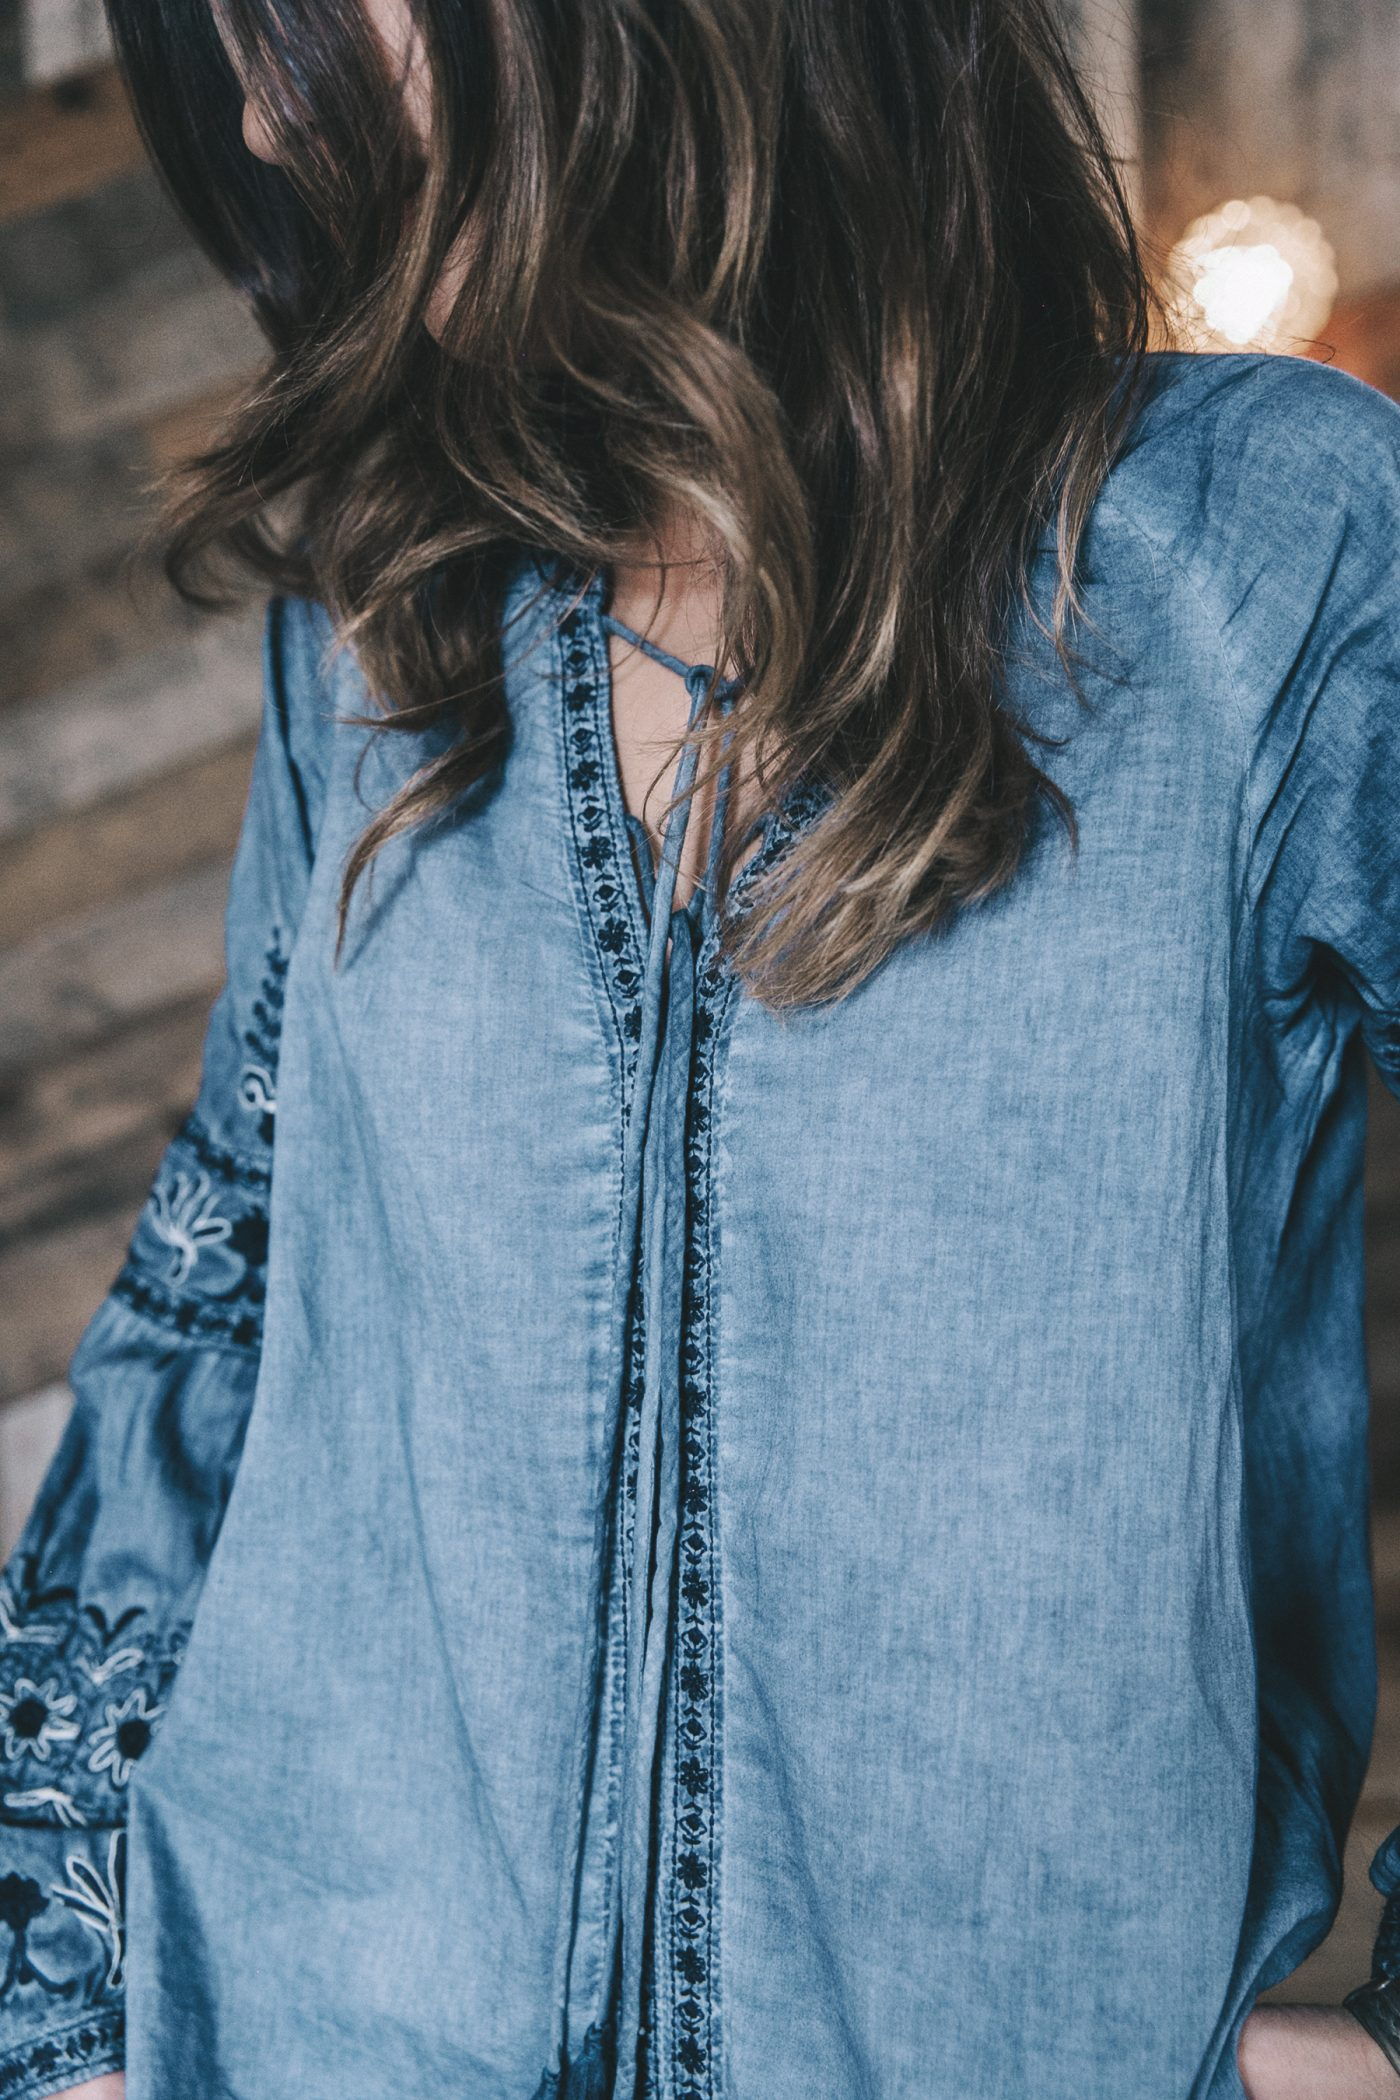 River_Island-Dry_Martina-Boho_Top-Blue_Blouse-White_Jeans-Espadrilles-Outfit-Street_Style-22